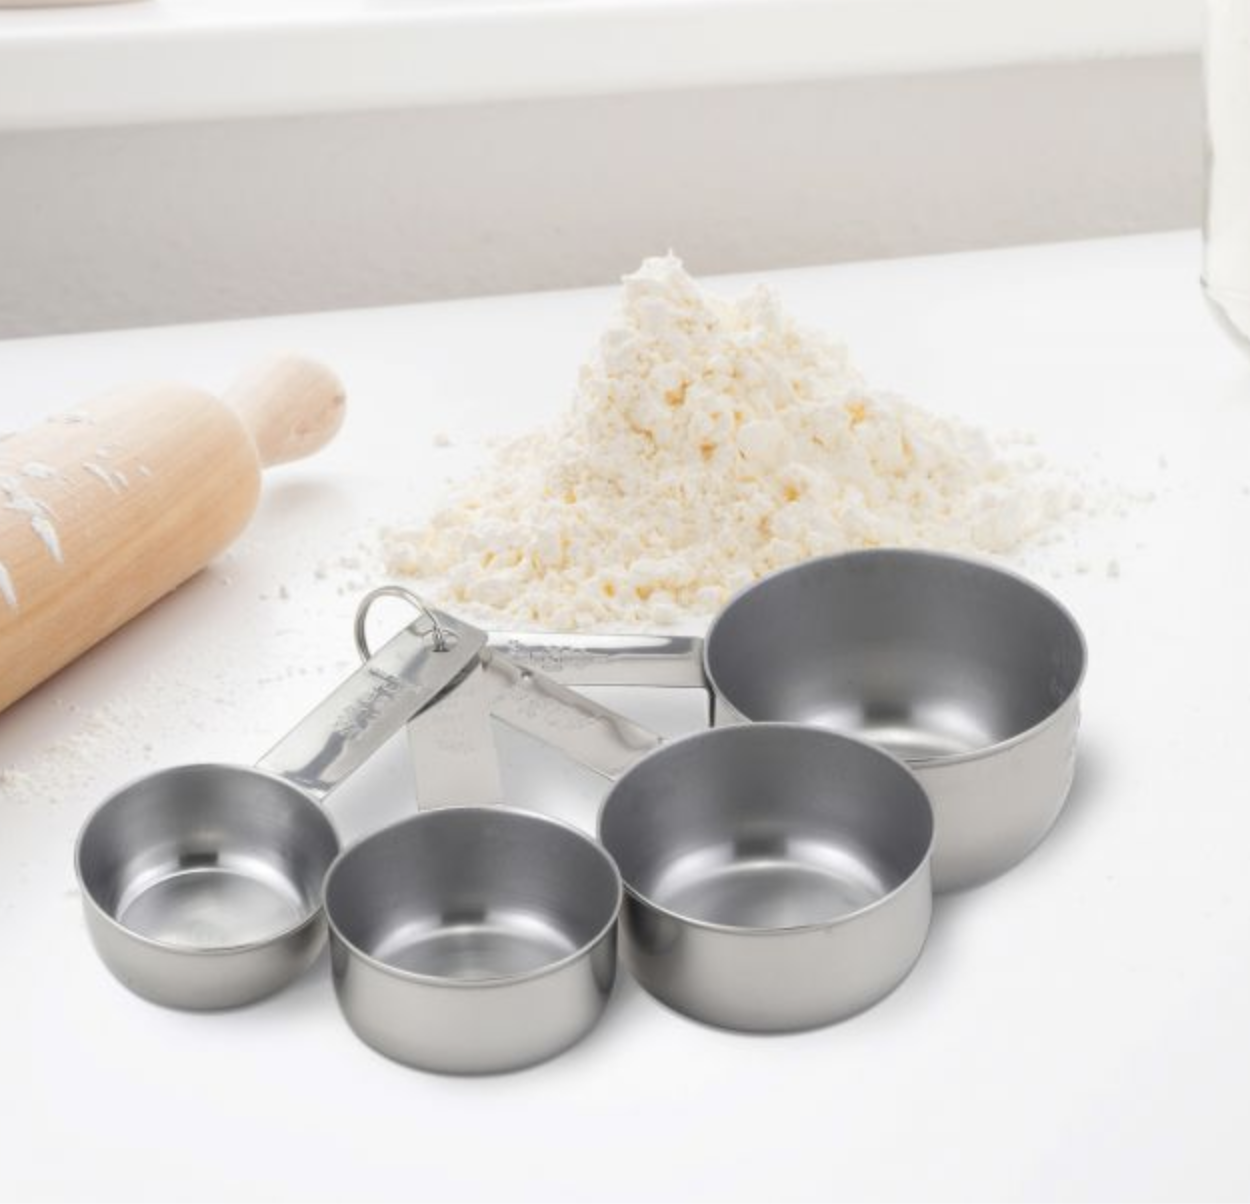 SS Measuring Cup, set of 4